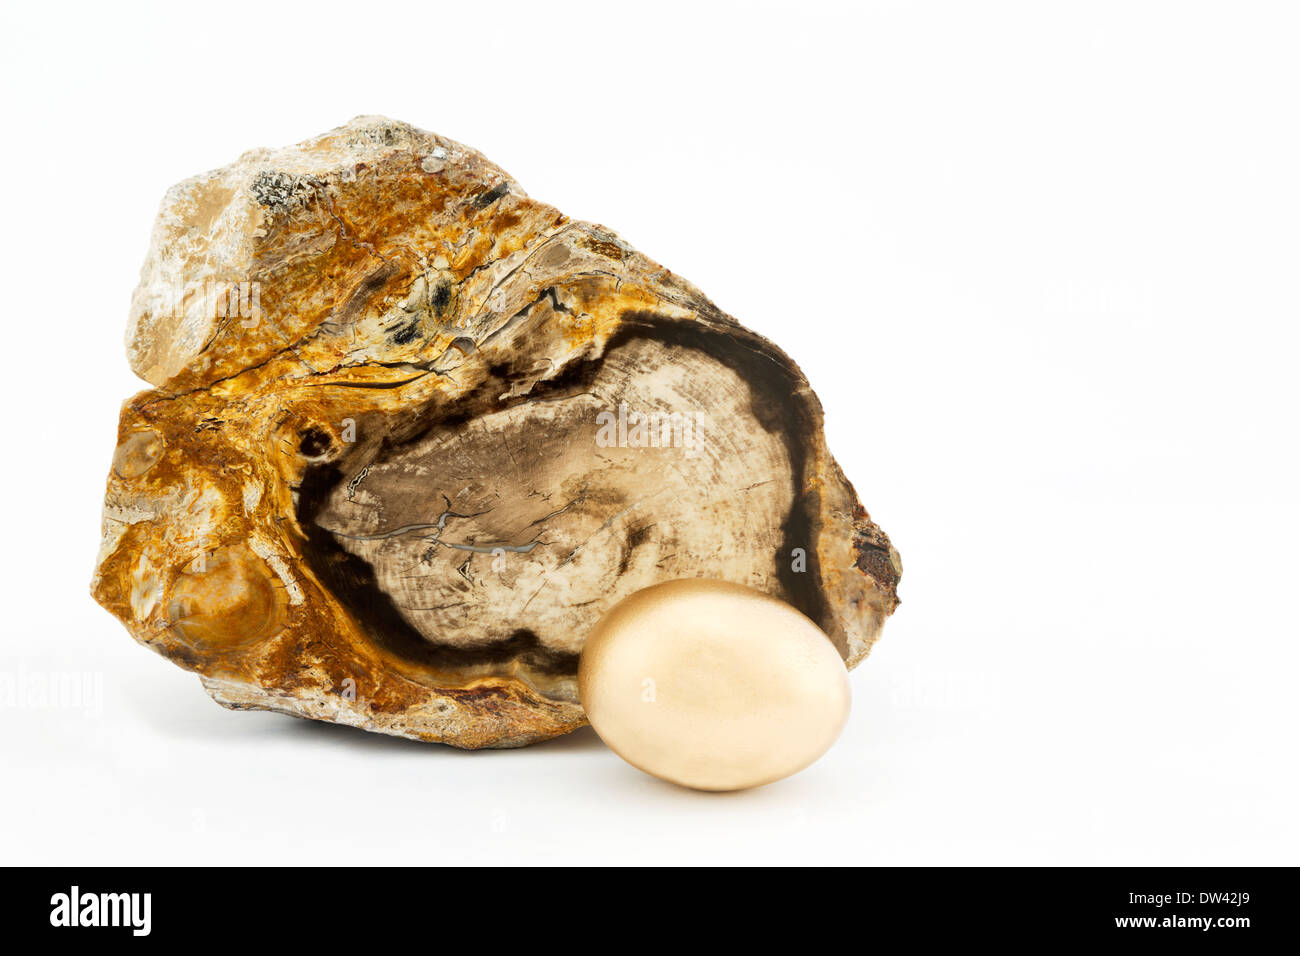 Specimen of petrified wood placed with gold nest egg to enhance time and strategy concepts accompanying investment & retirement. - Stock Image